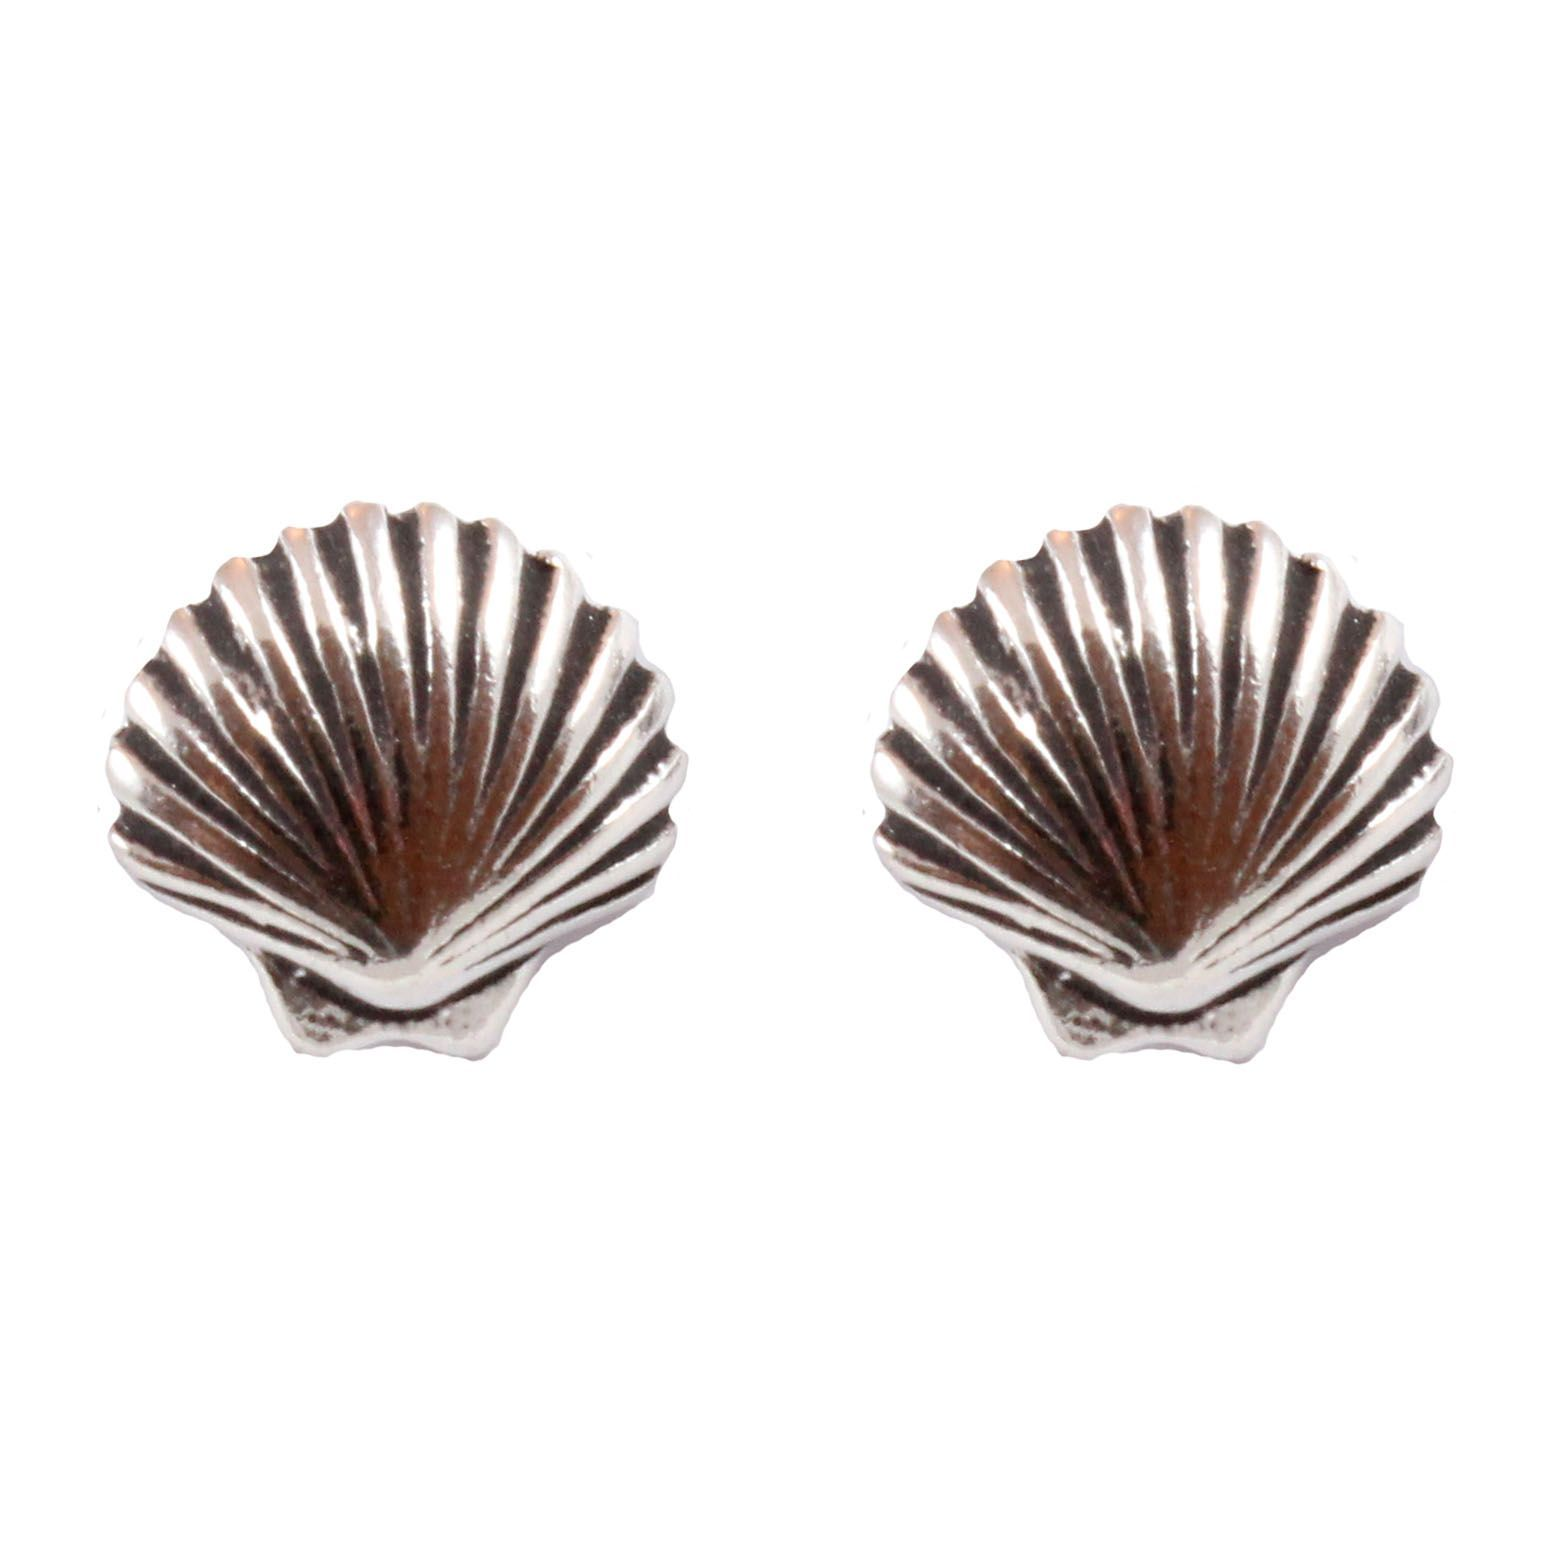 Charm School Uk Gt Sterling Silver Stud Earrings Gt Scallop